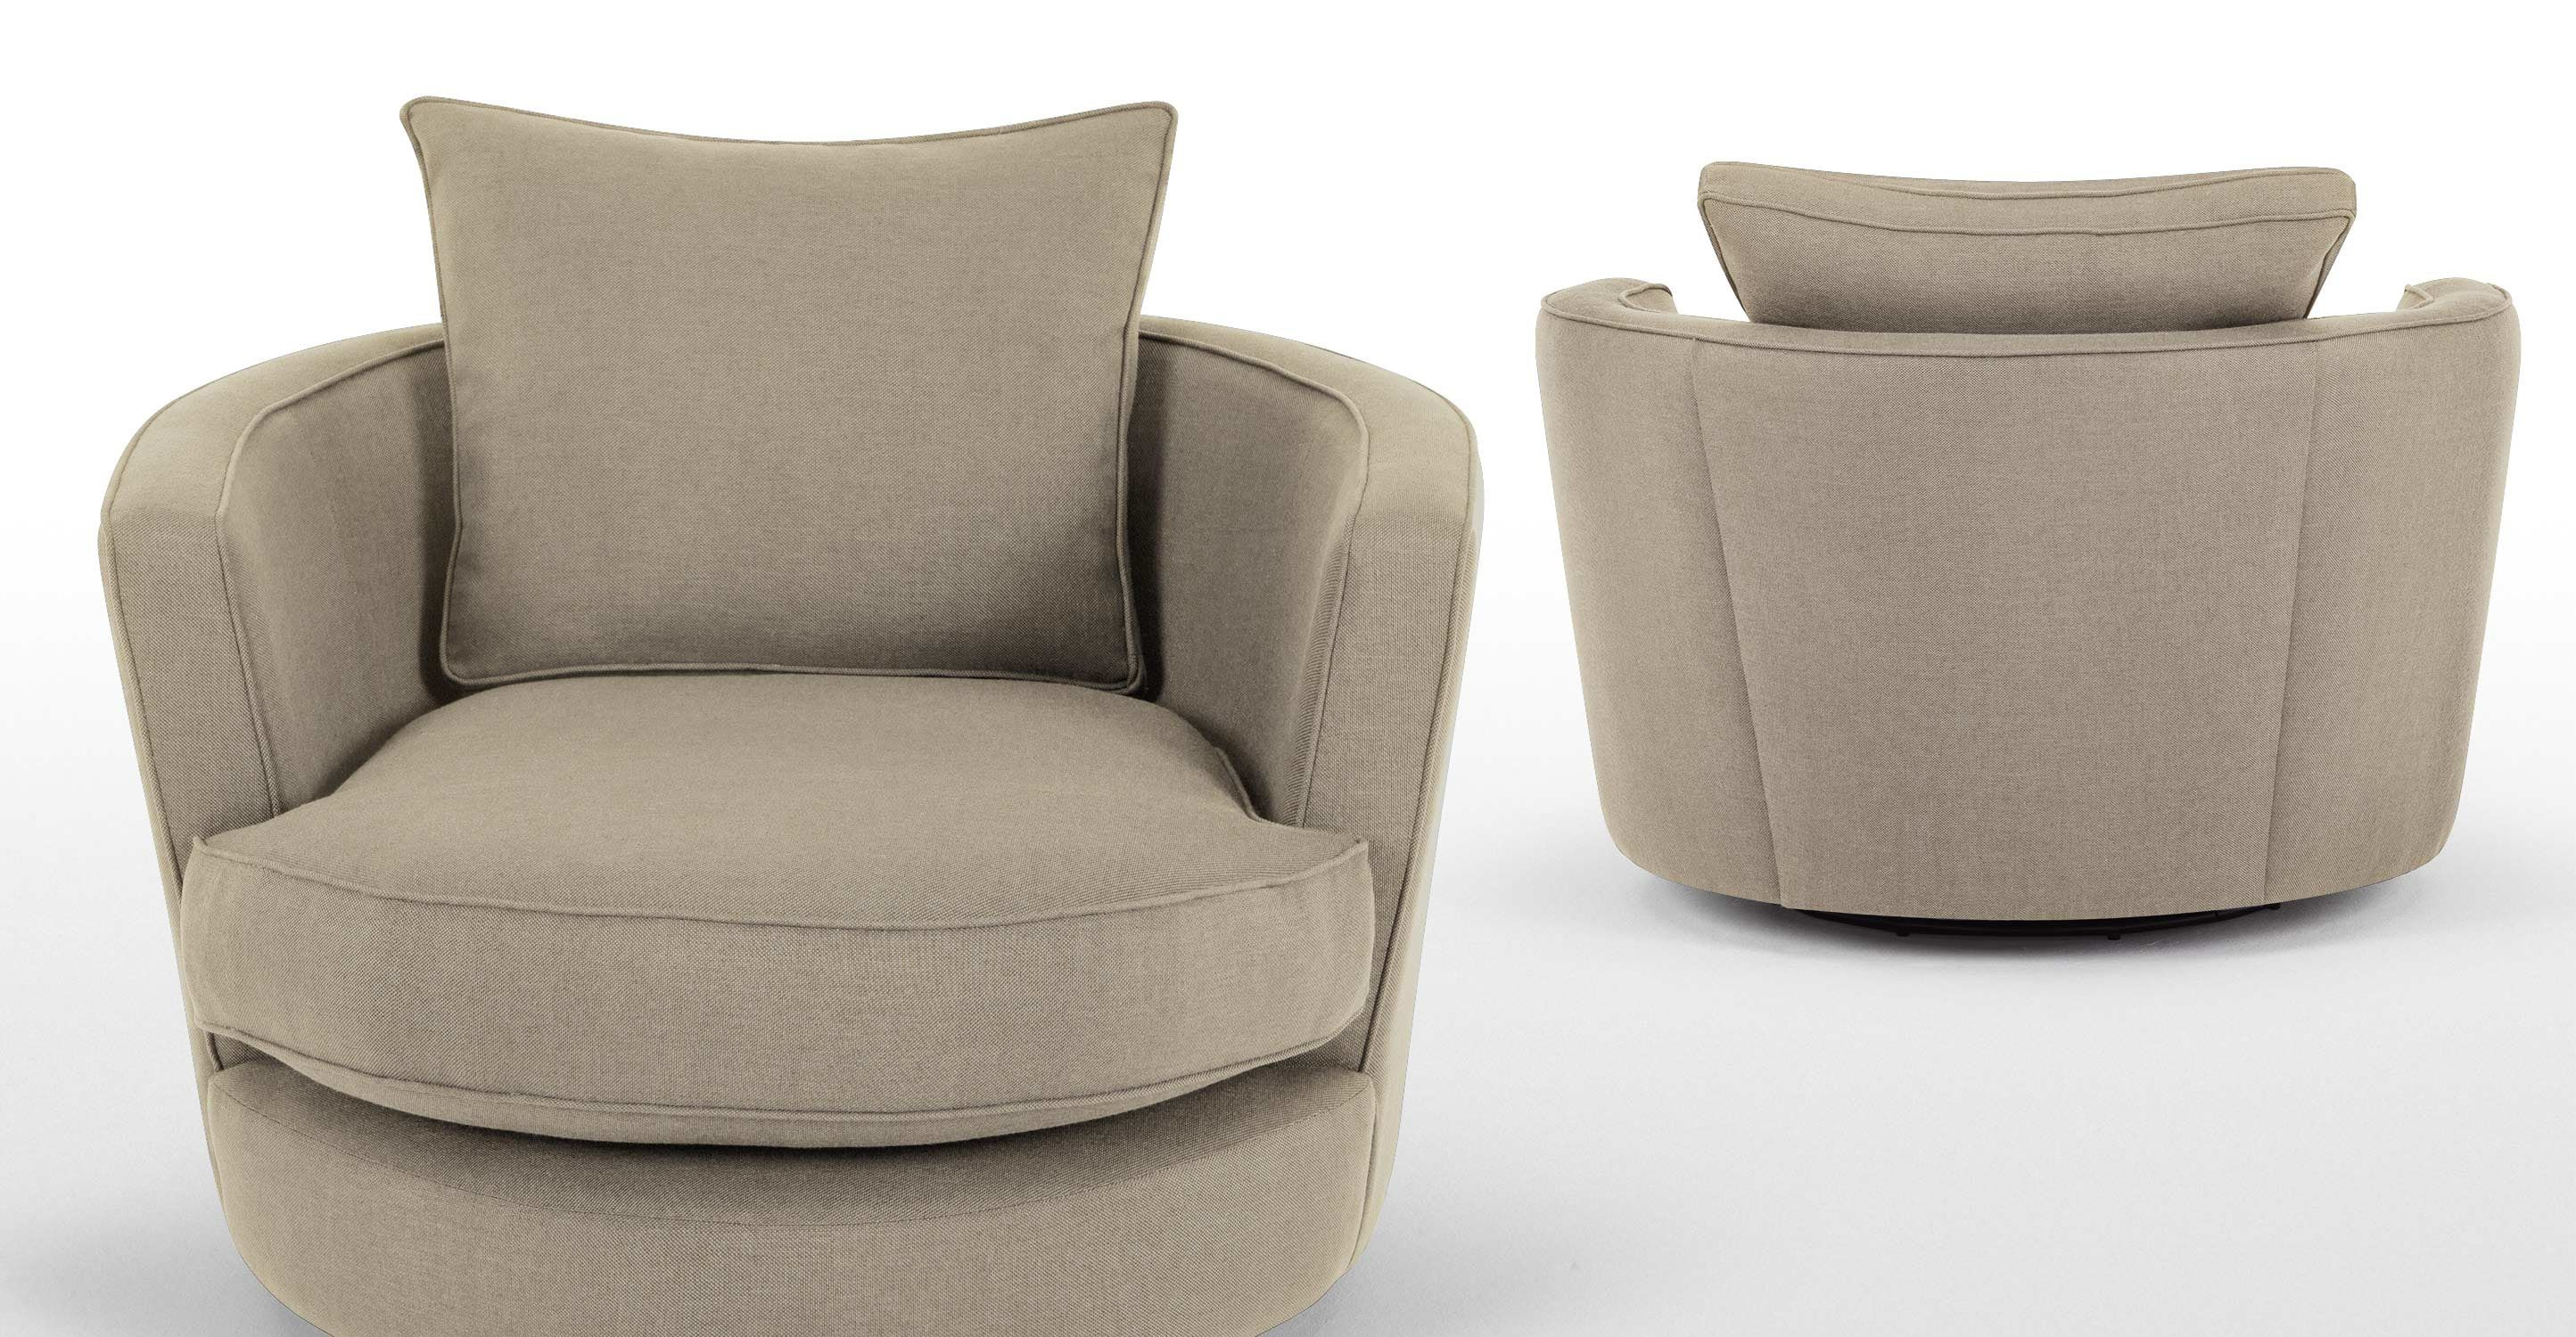 Leon Swivel Love Seat, Mink Grey From Made.com. Makes A Fresh, Inspired  Choice. With Playful, Curved Lines And Swivel Base For Extra Fun Factor. In  ..